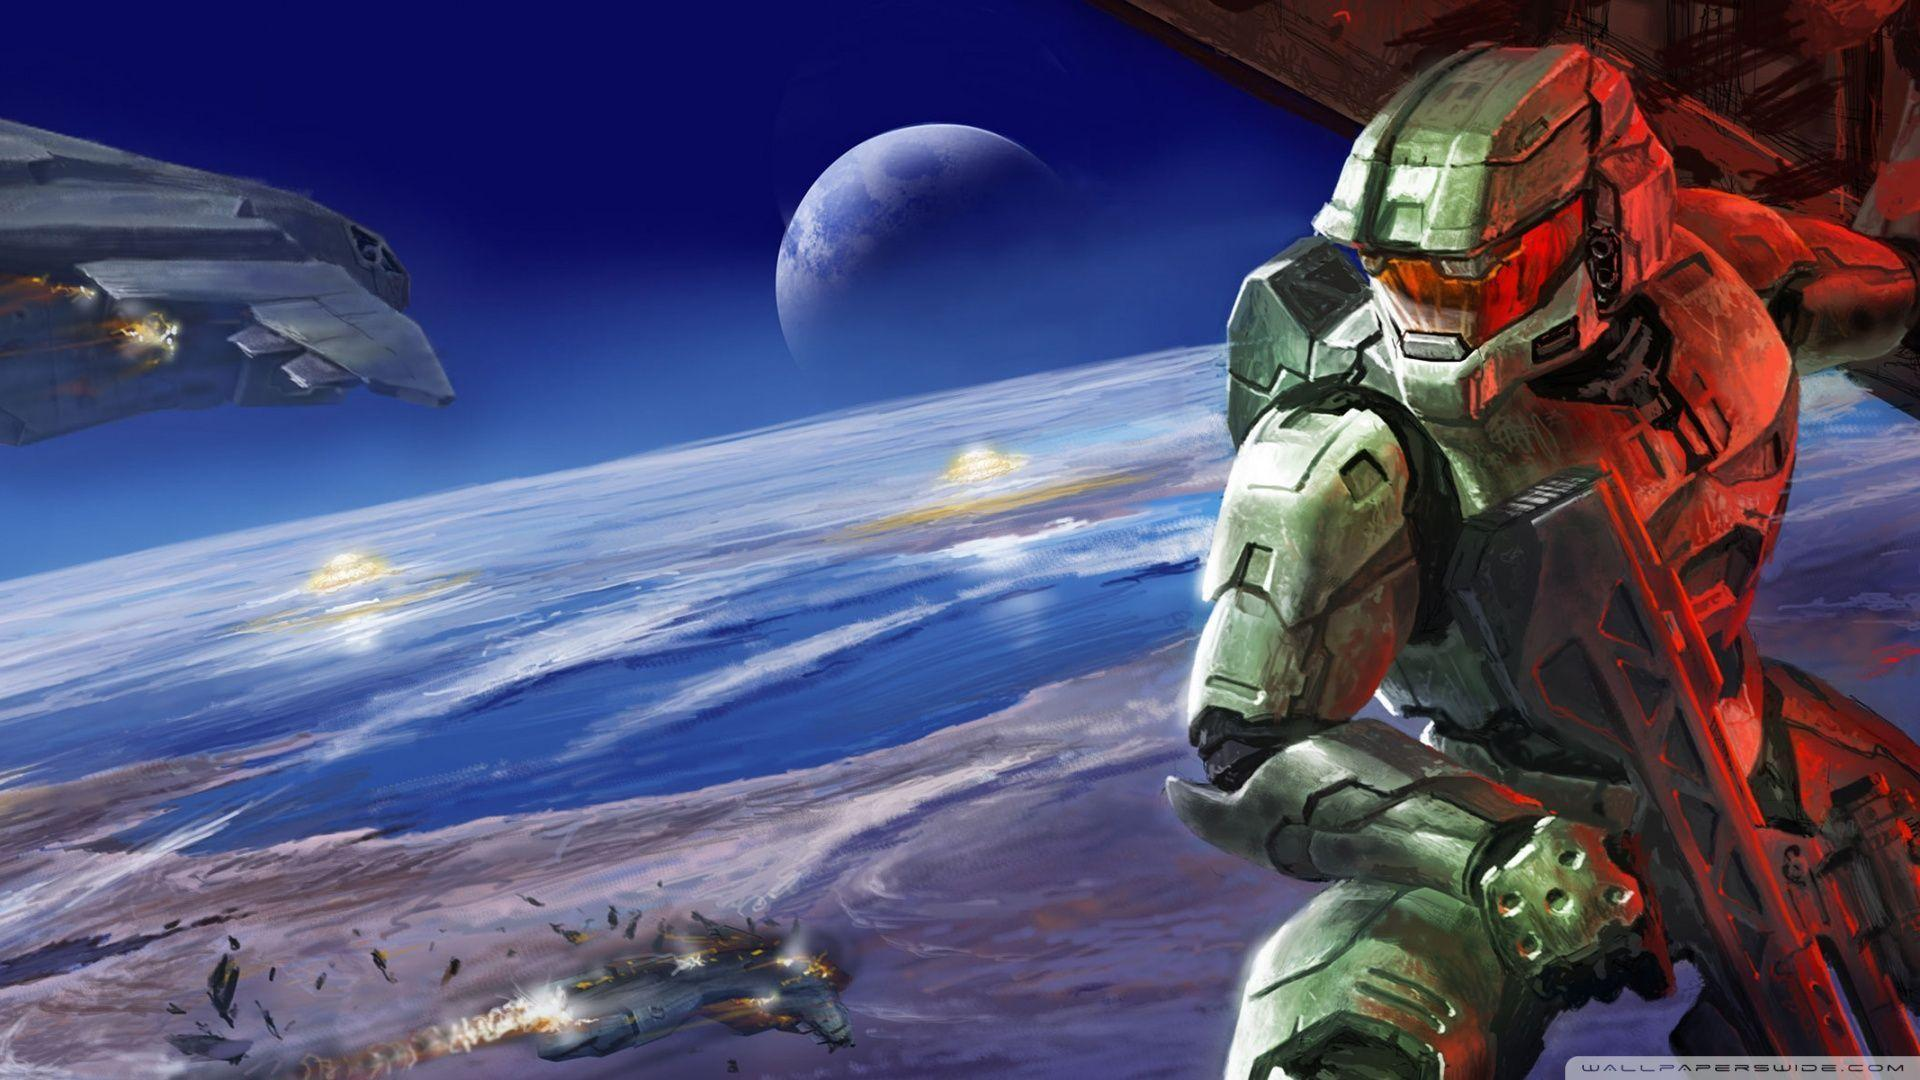 Halo Wallpapers 1920x1080 - Wallpaper Cave